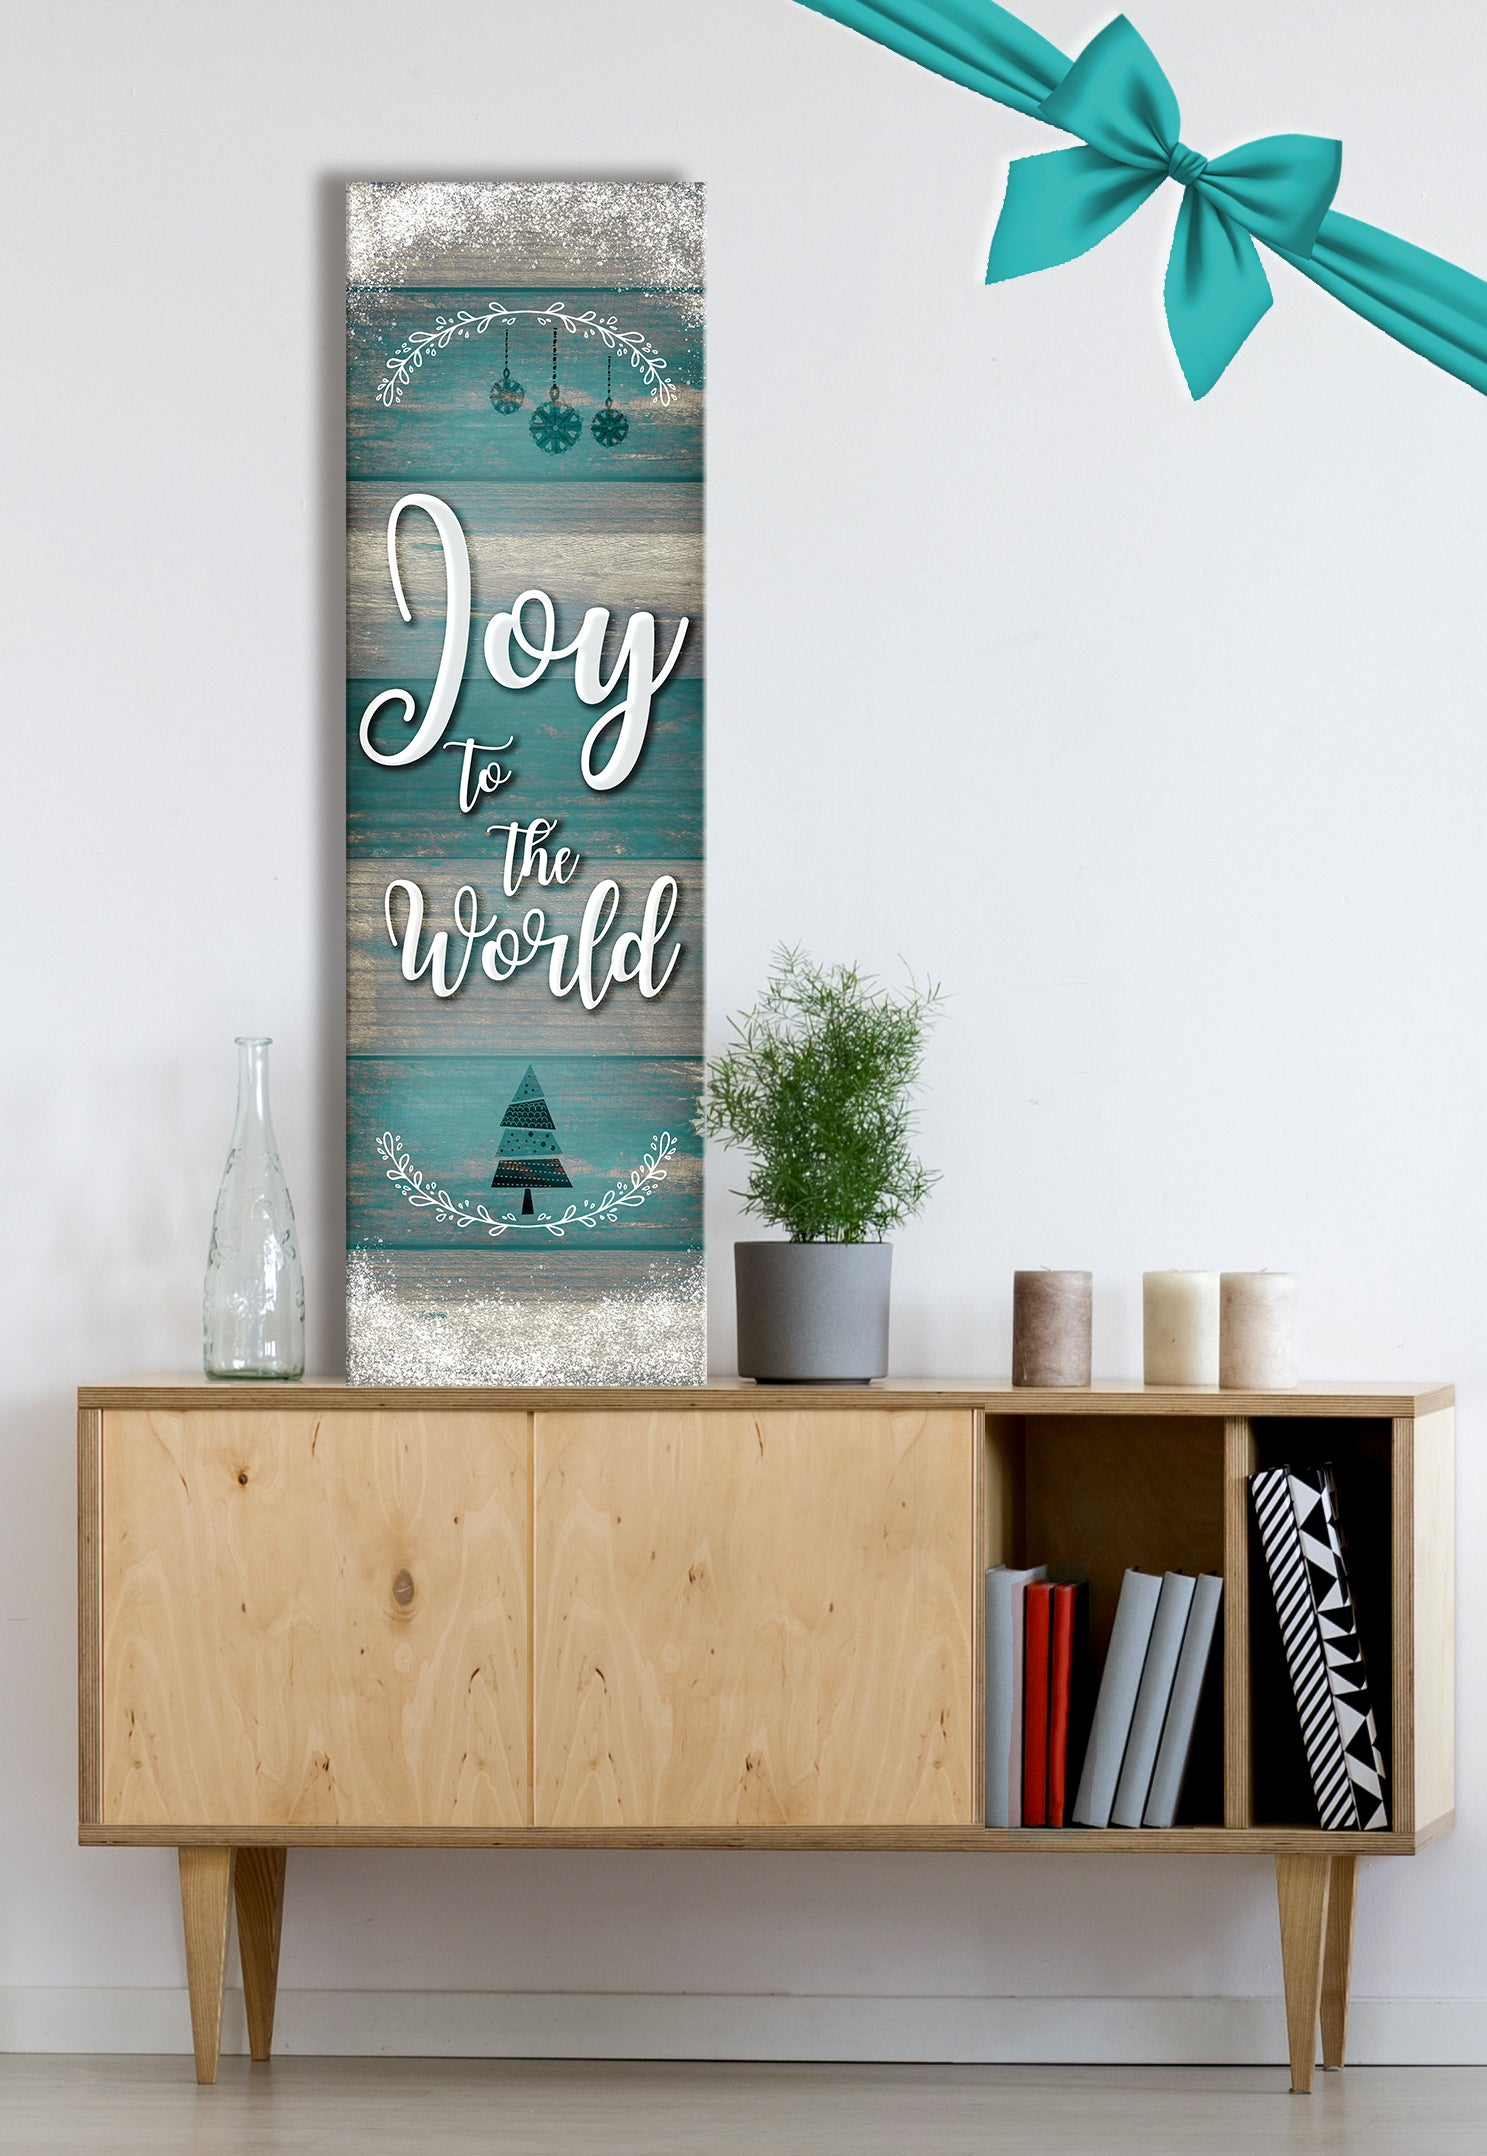 Holiday Decor Wall Art: Joy To The World (Wood Frame Ready To Hang)